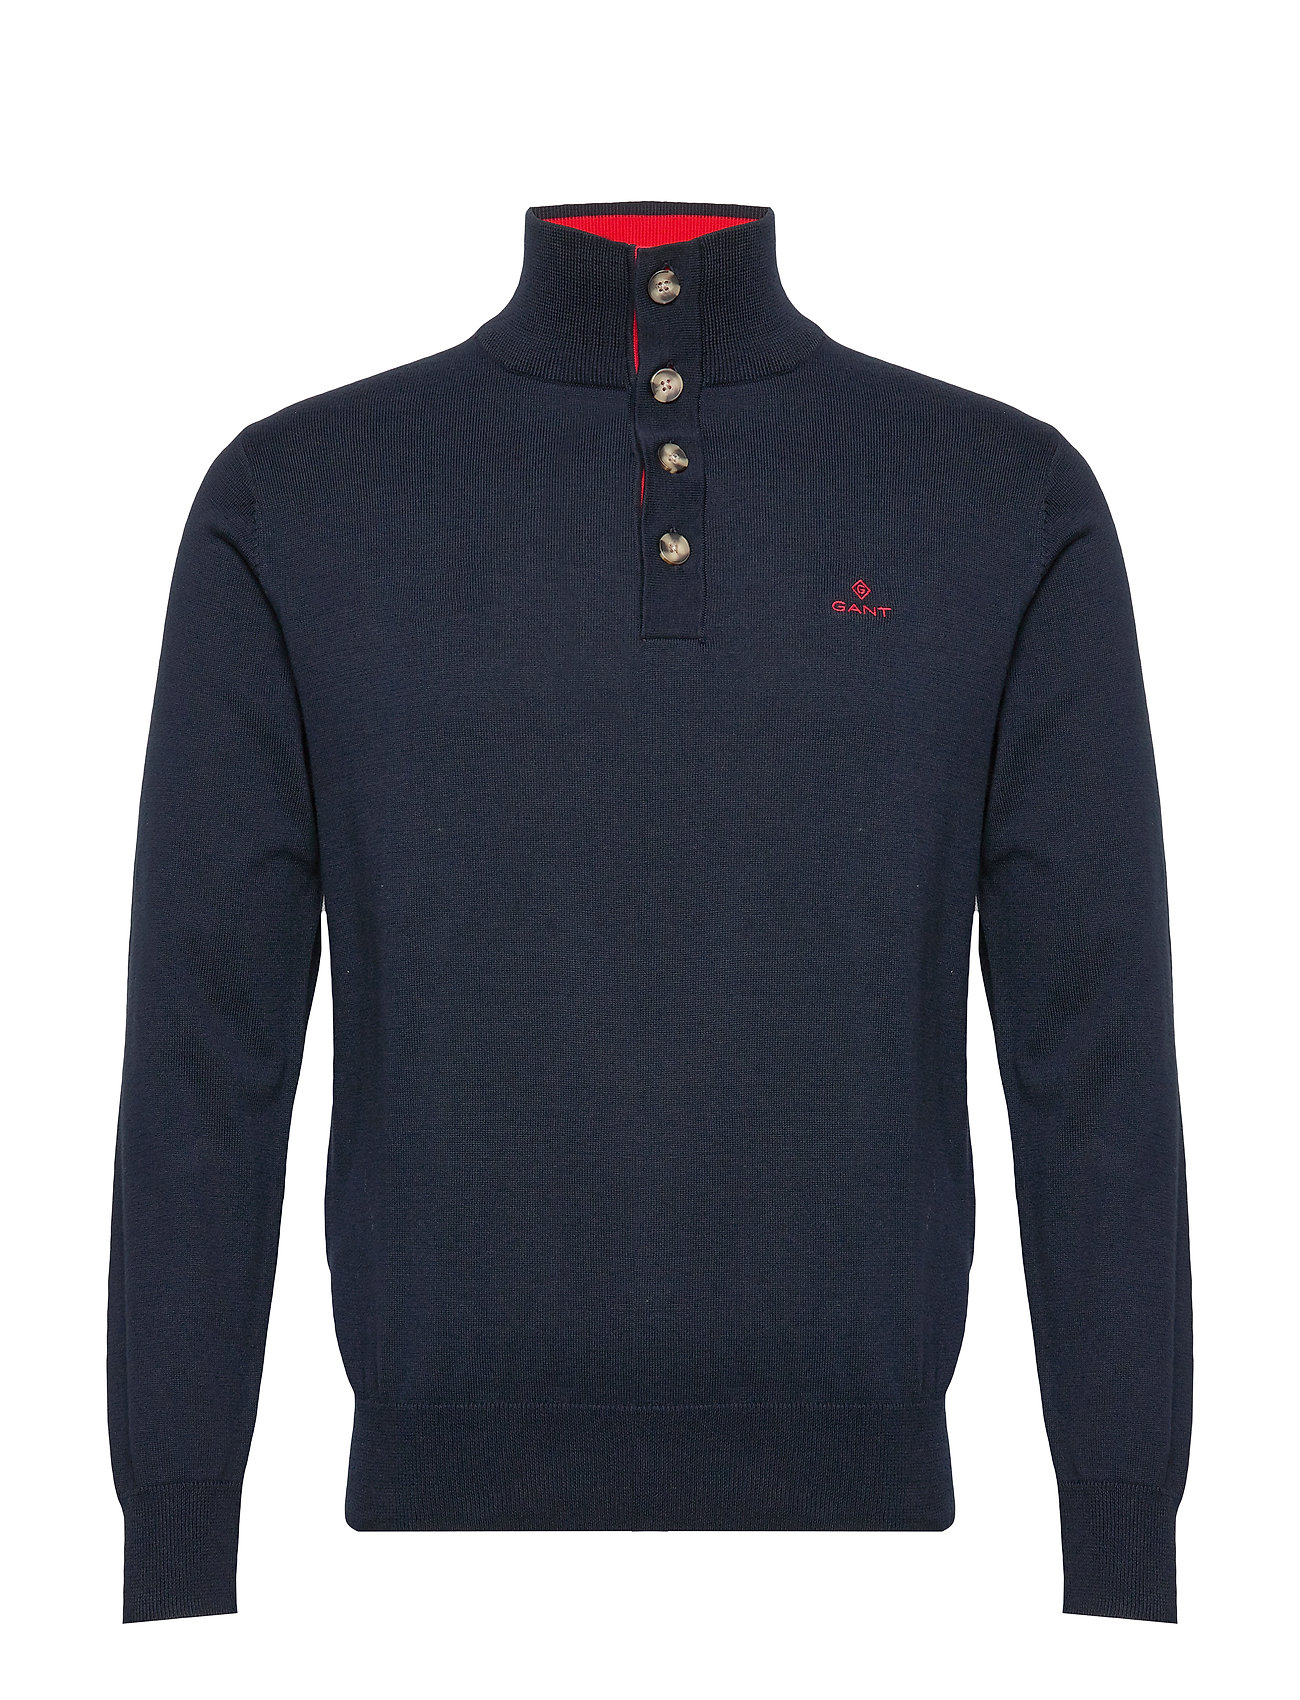 Gant D1. SPORTY MOCKNECK - EVENING BLUE